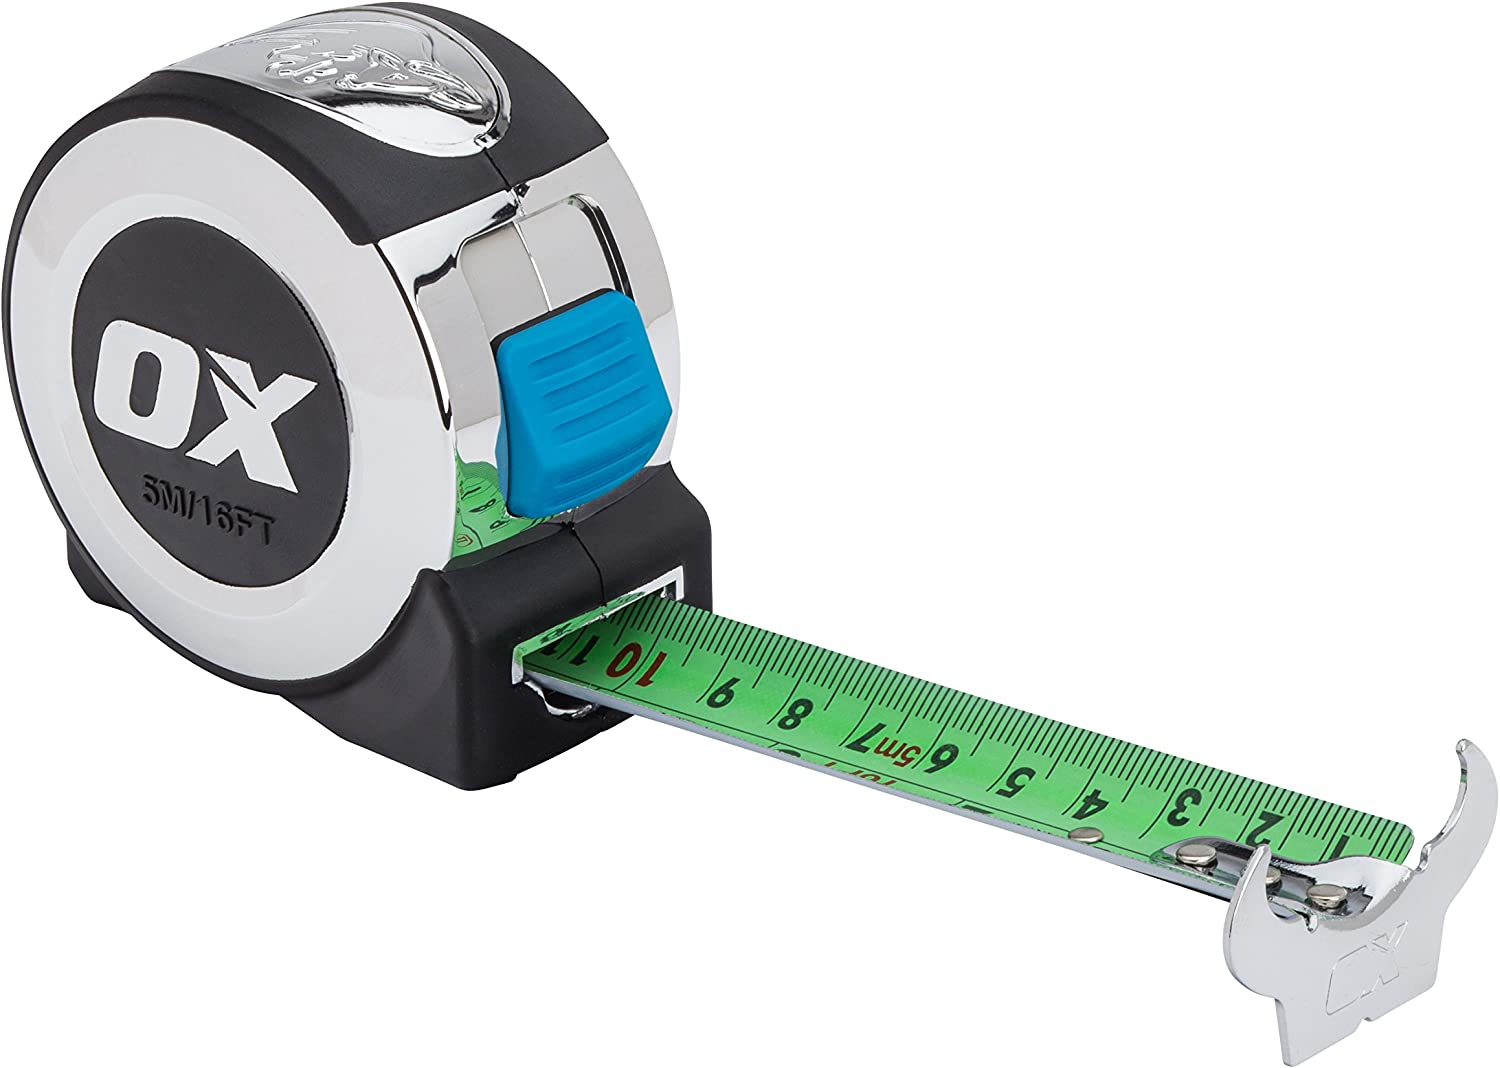 EQUIP 5m//16ft Pocket Tape Measure SILVER COLOUR WITH AUTO LOCK HEAVY DUTY